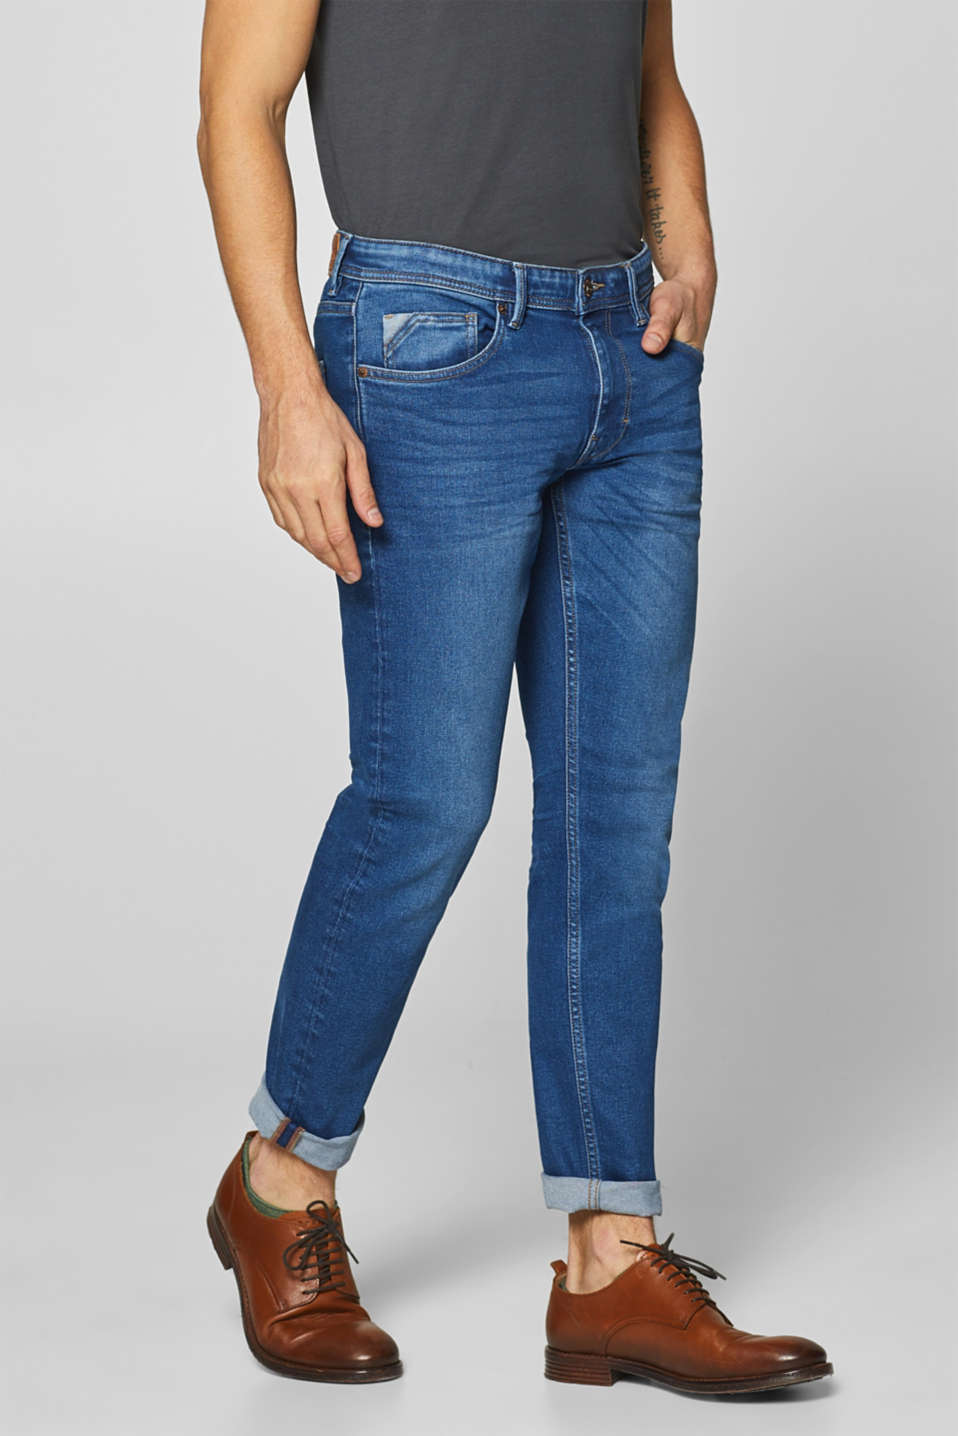 Esprit - Super stretchy denim with garment-washed effects